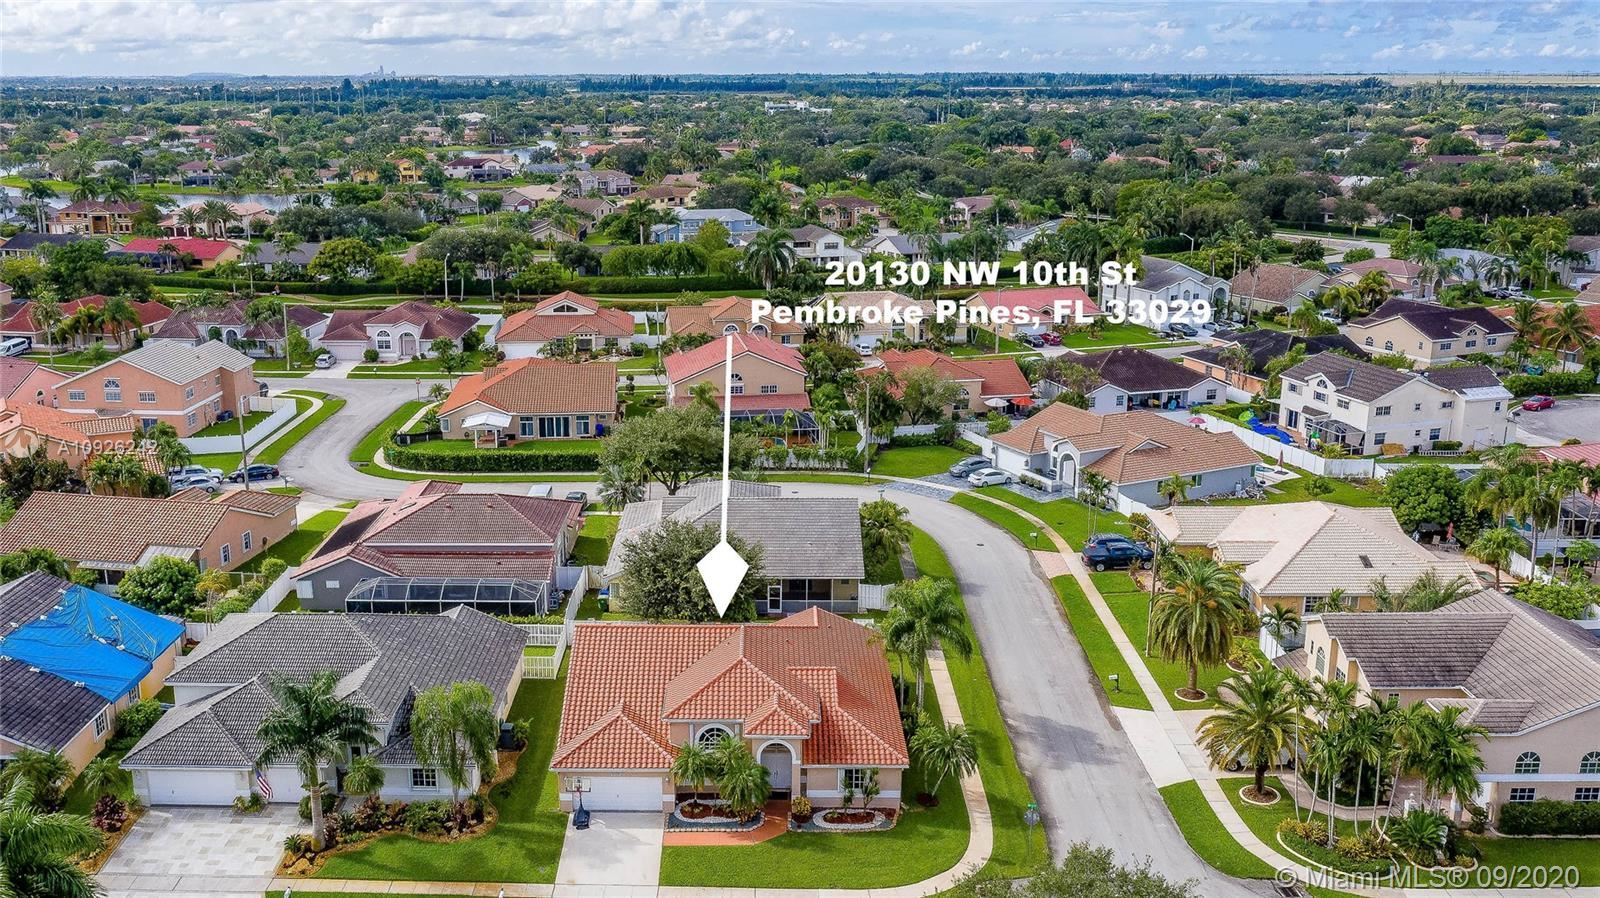 20130 NW 10th St, Pembroke Pines, FL 33029 - #: A10926242